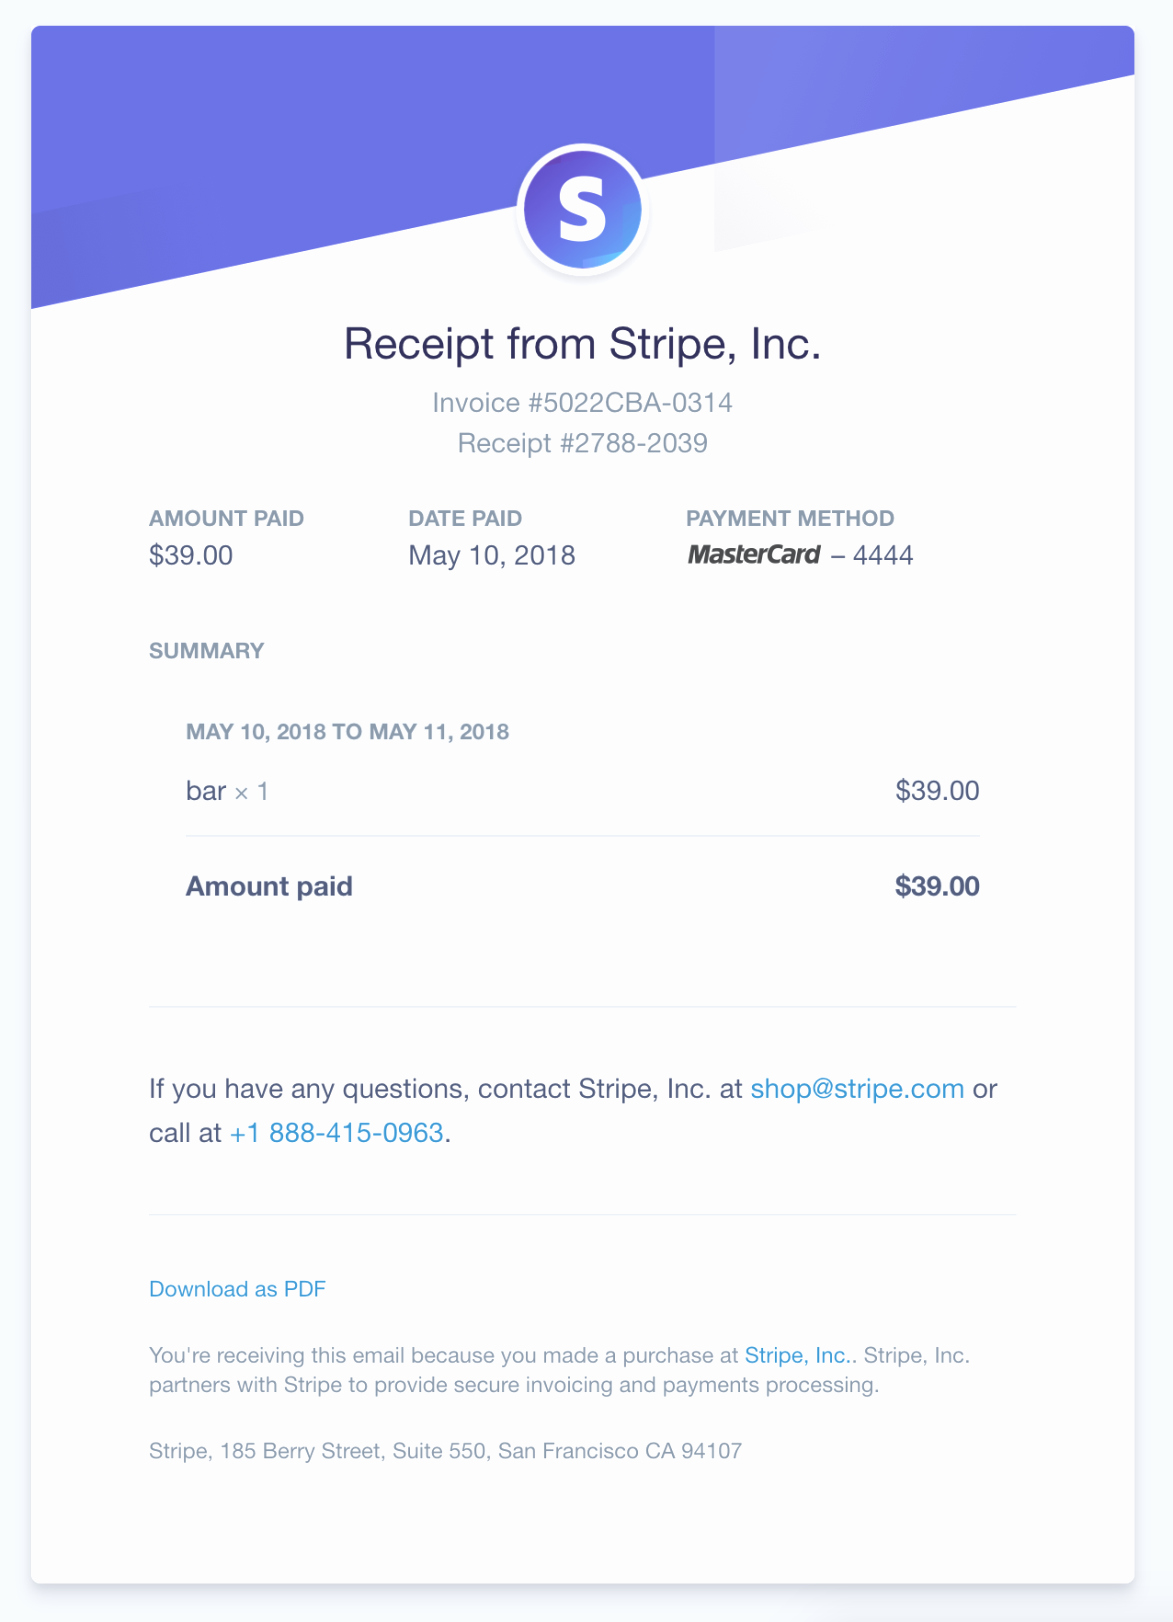 Best Buy Receipt Generator Elegant 6 Ways to Accept Recurring Payments 2019